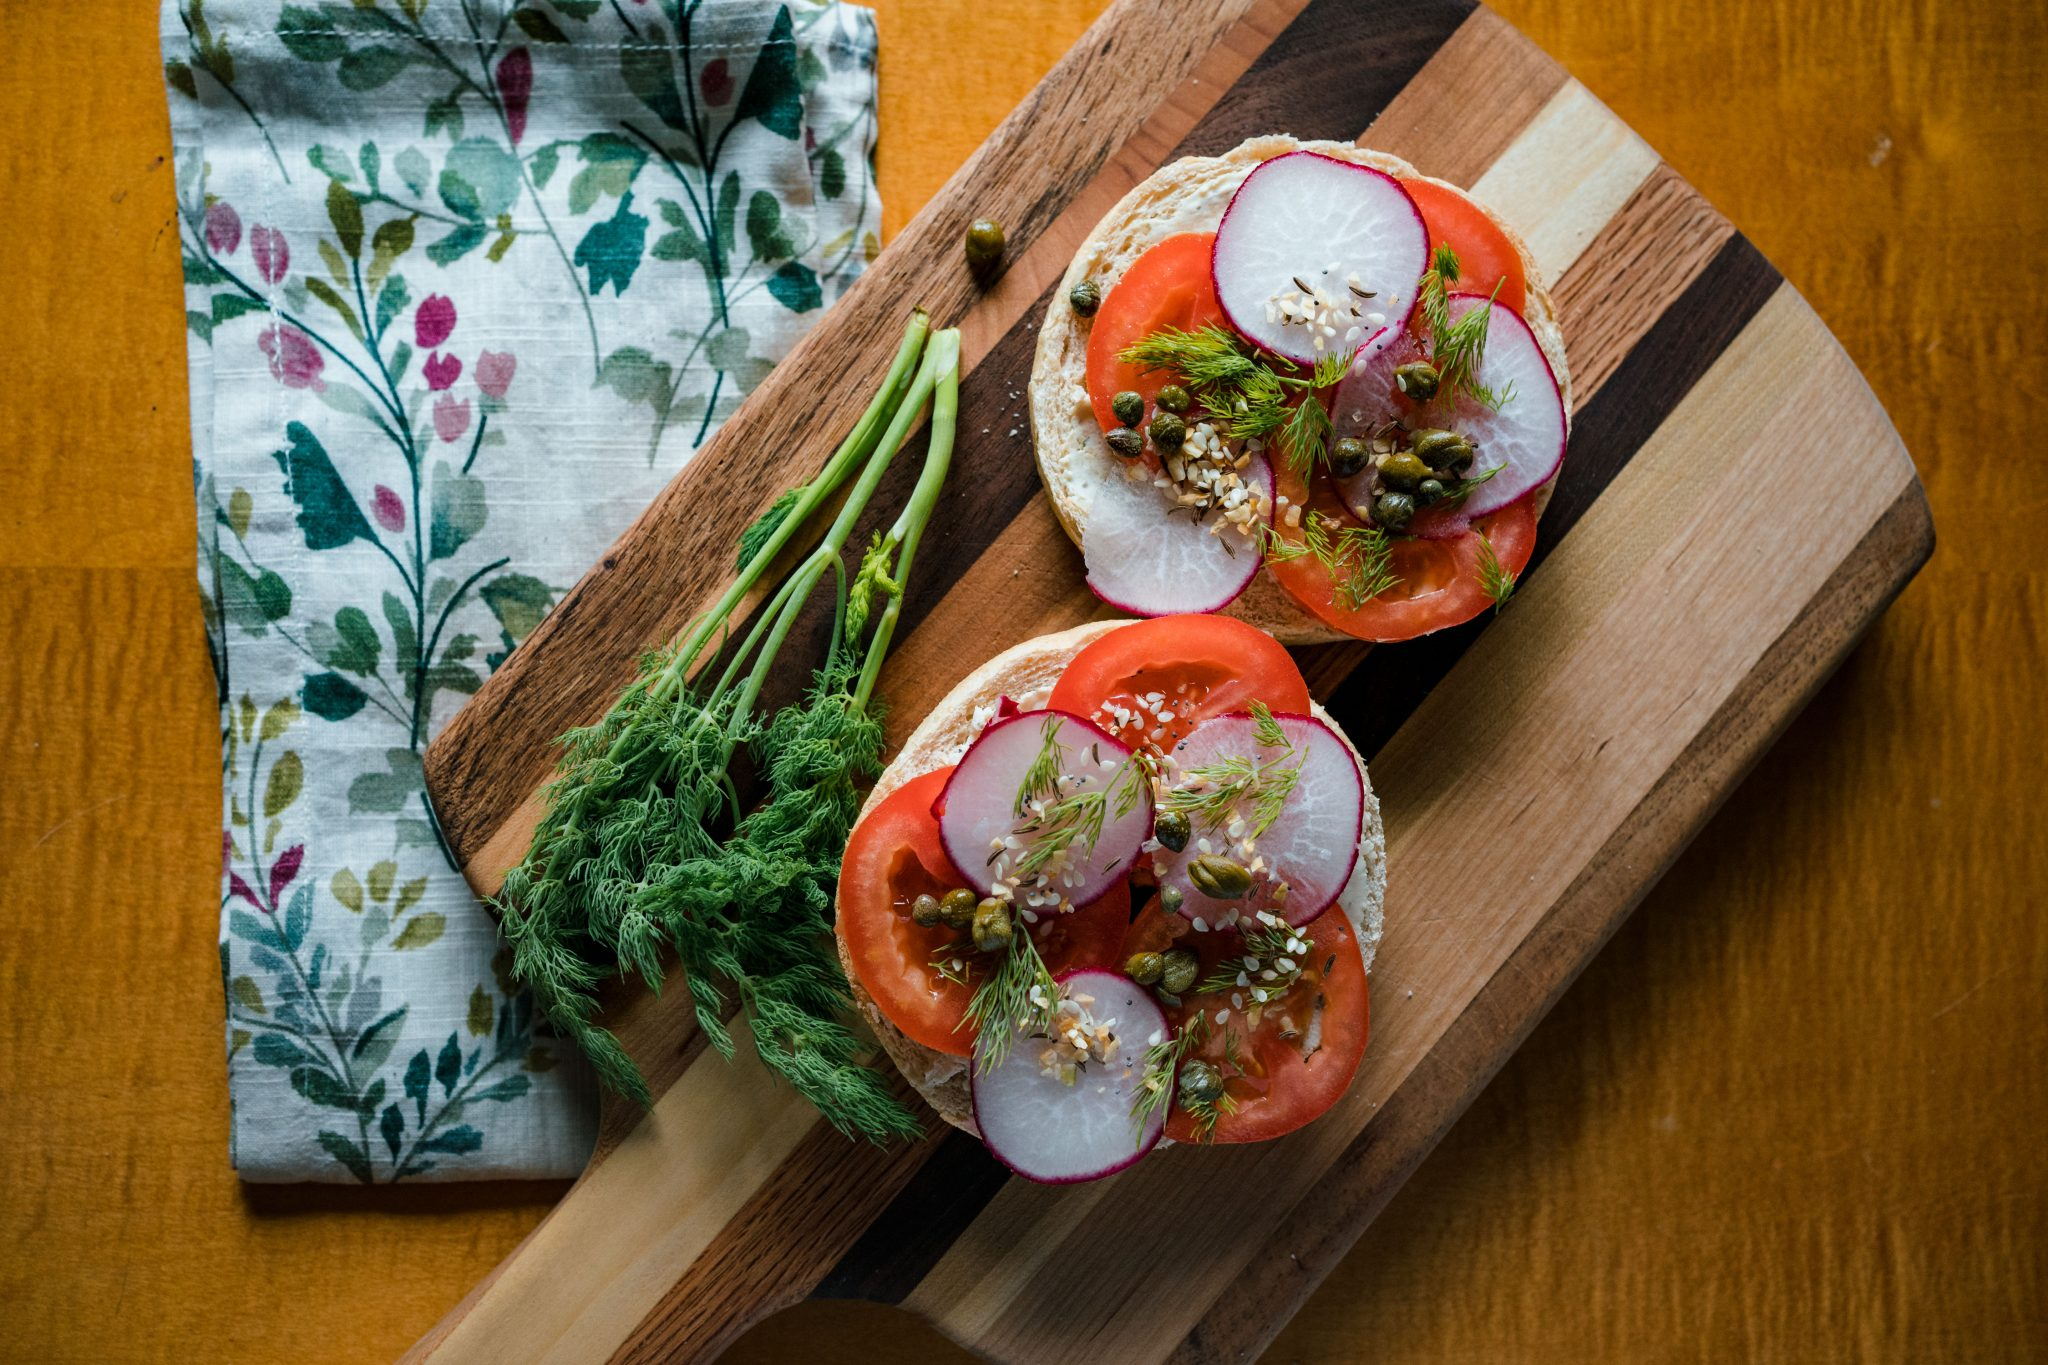 bagels with dill, capers, tomatoes and radish